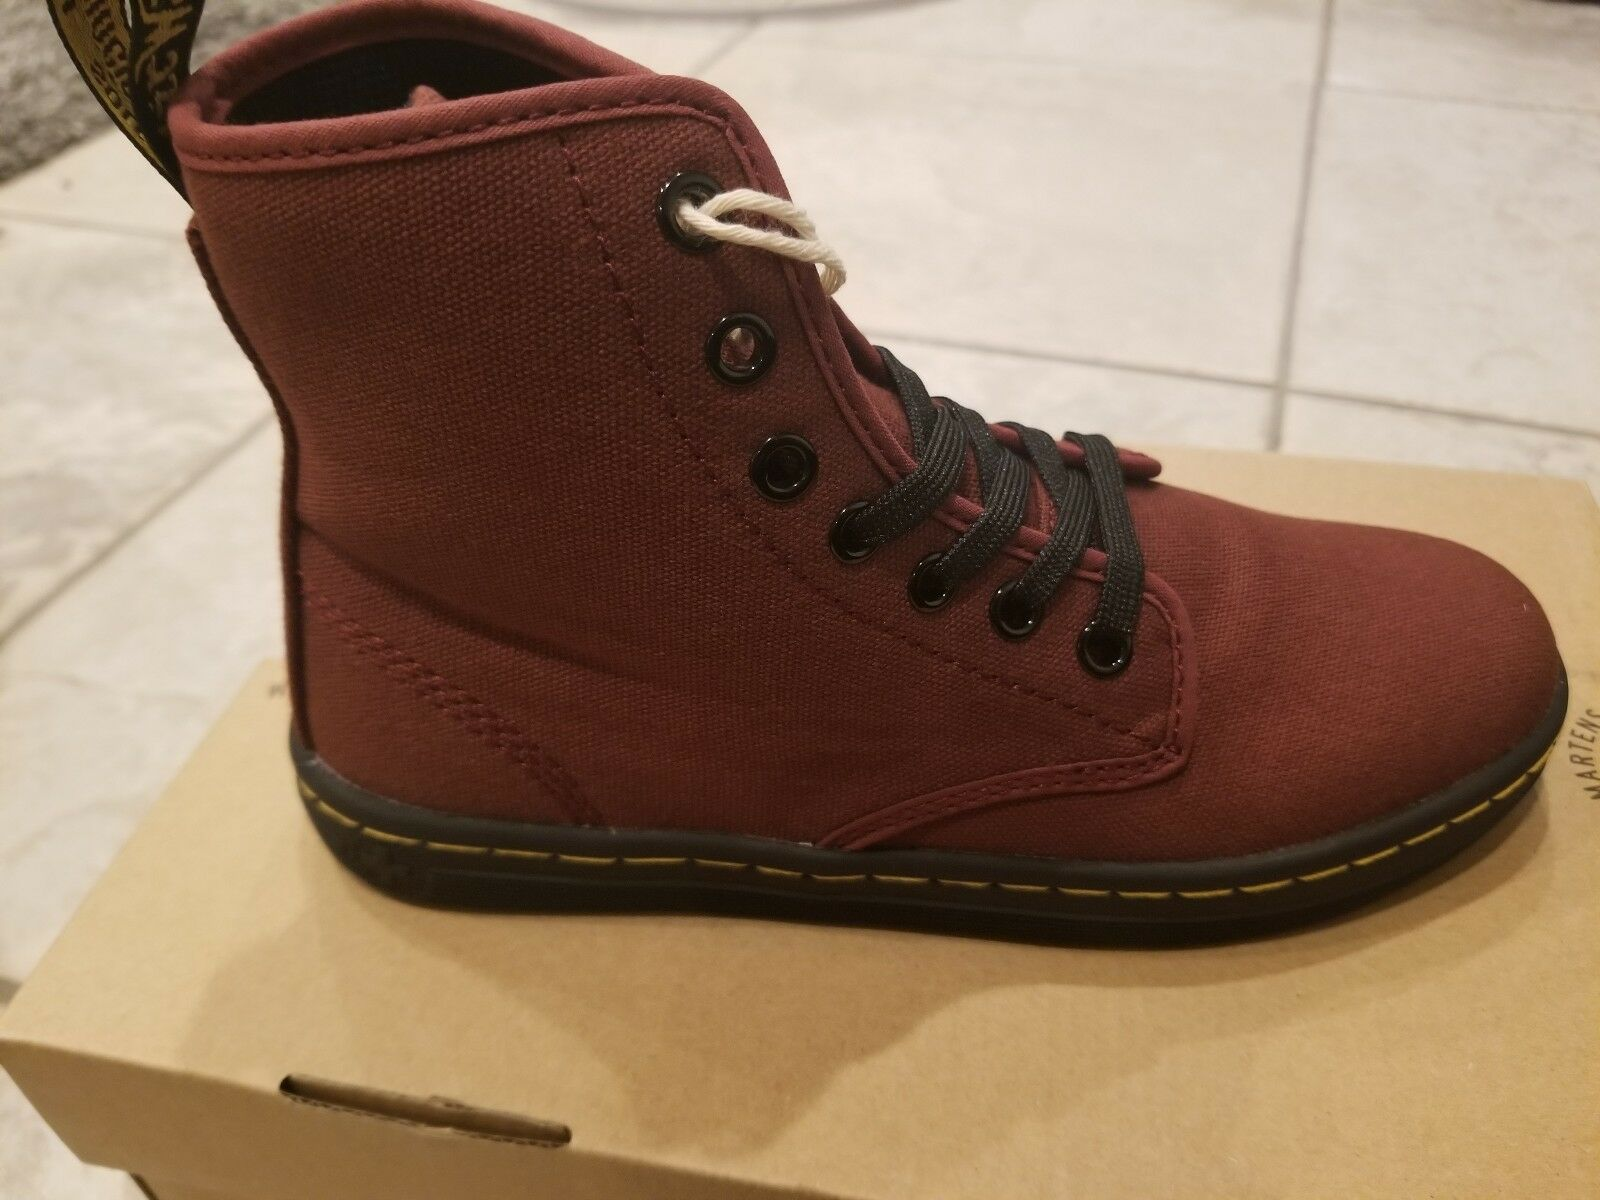 Dr. Martens size 5 women, 3 UK boots